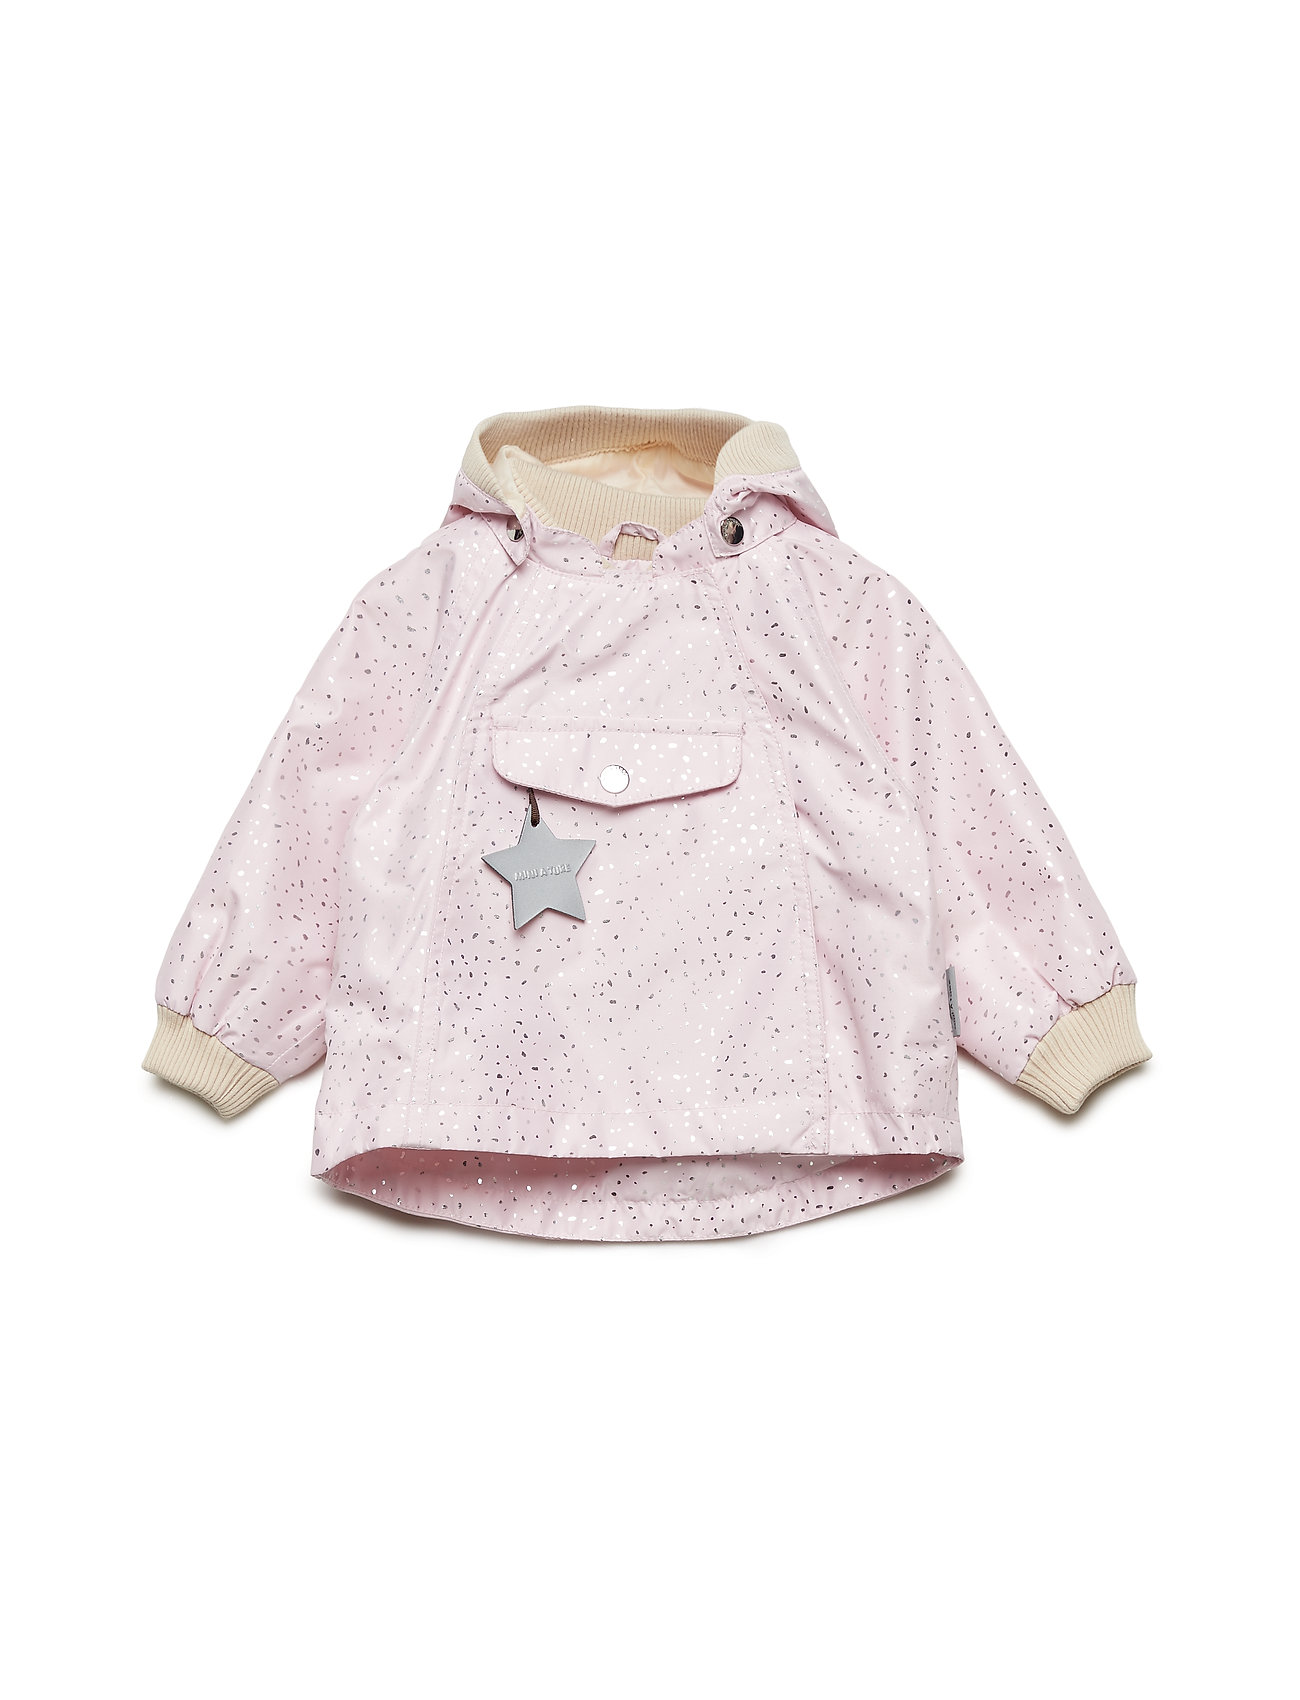 Mini A Ture Wai Jacket, M - BLUSHING PINK